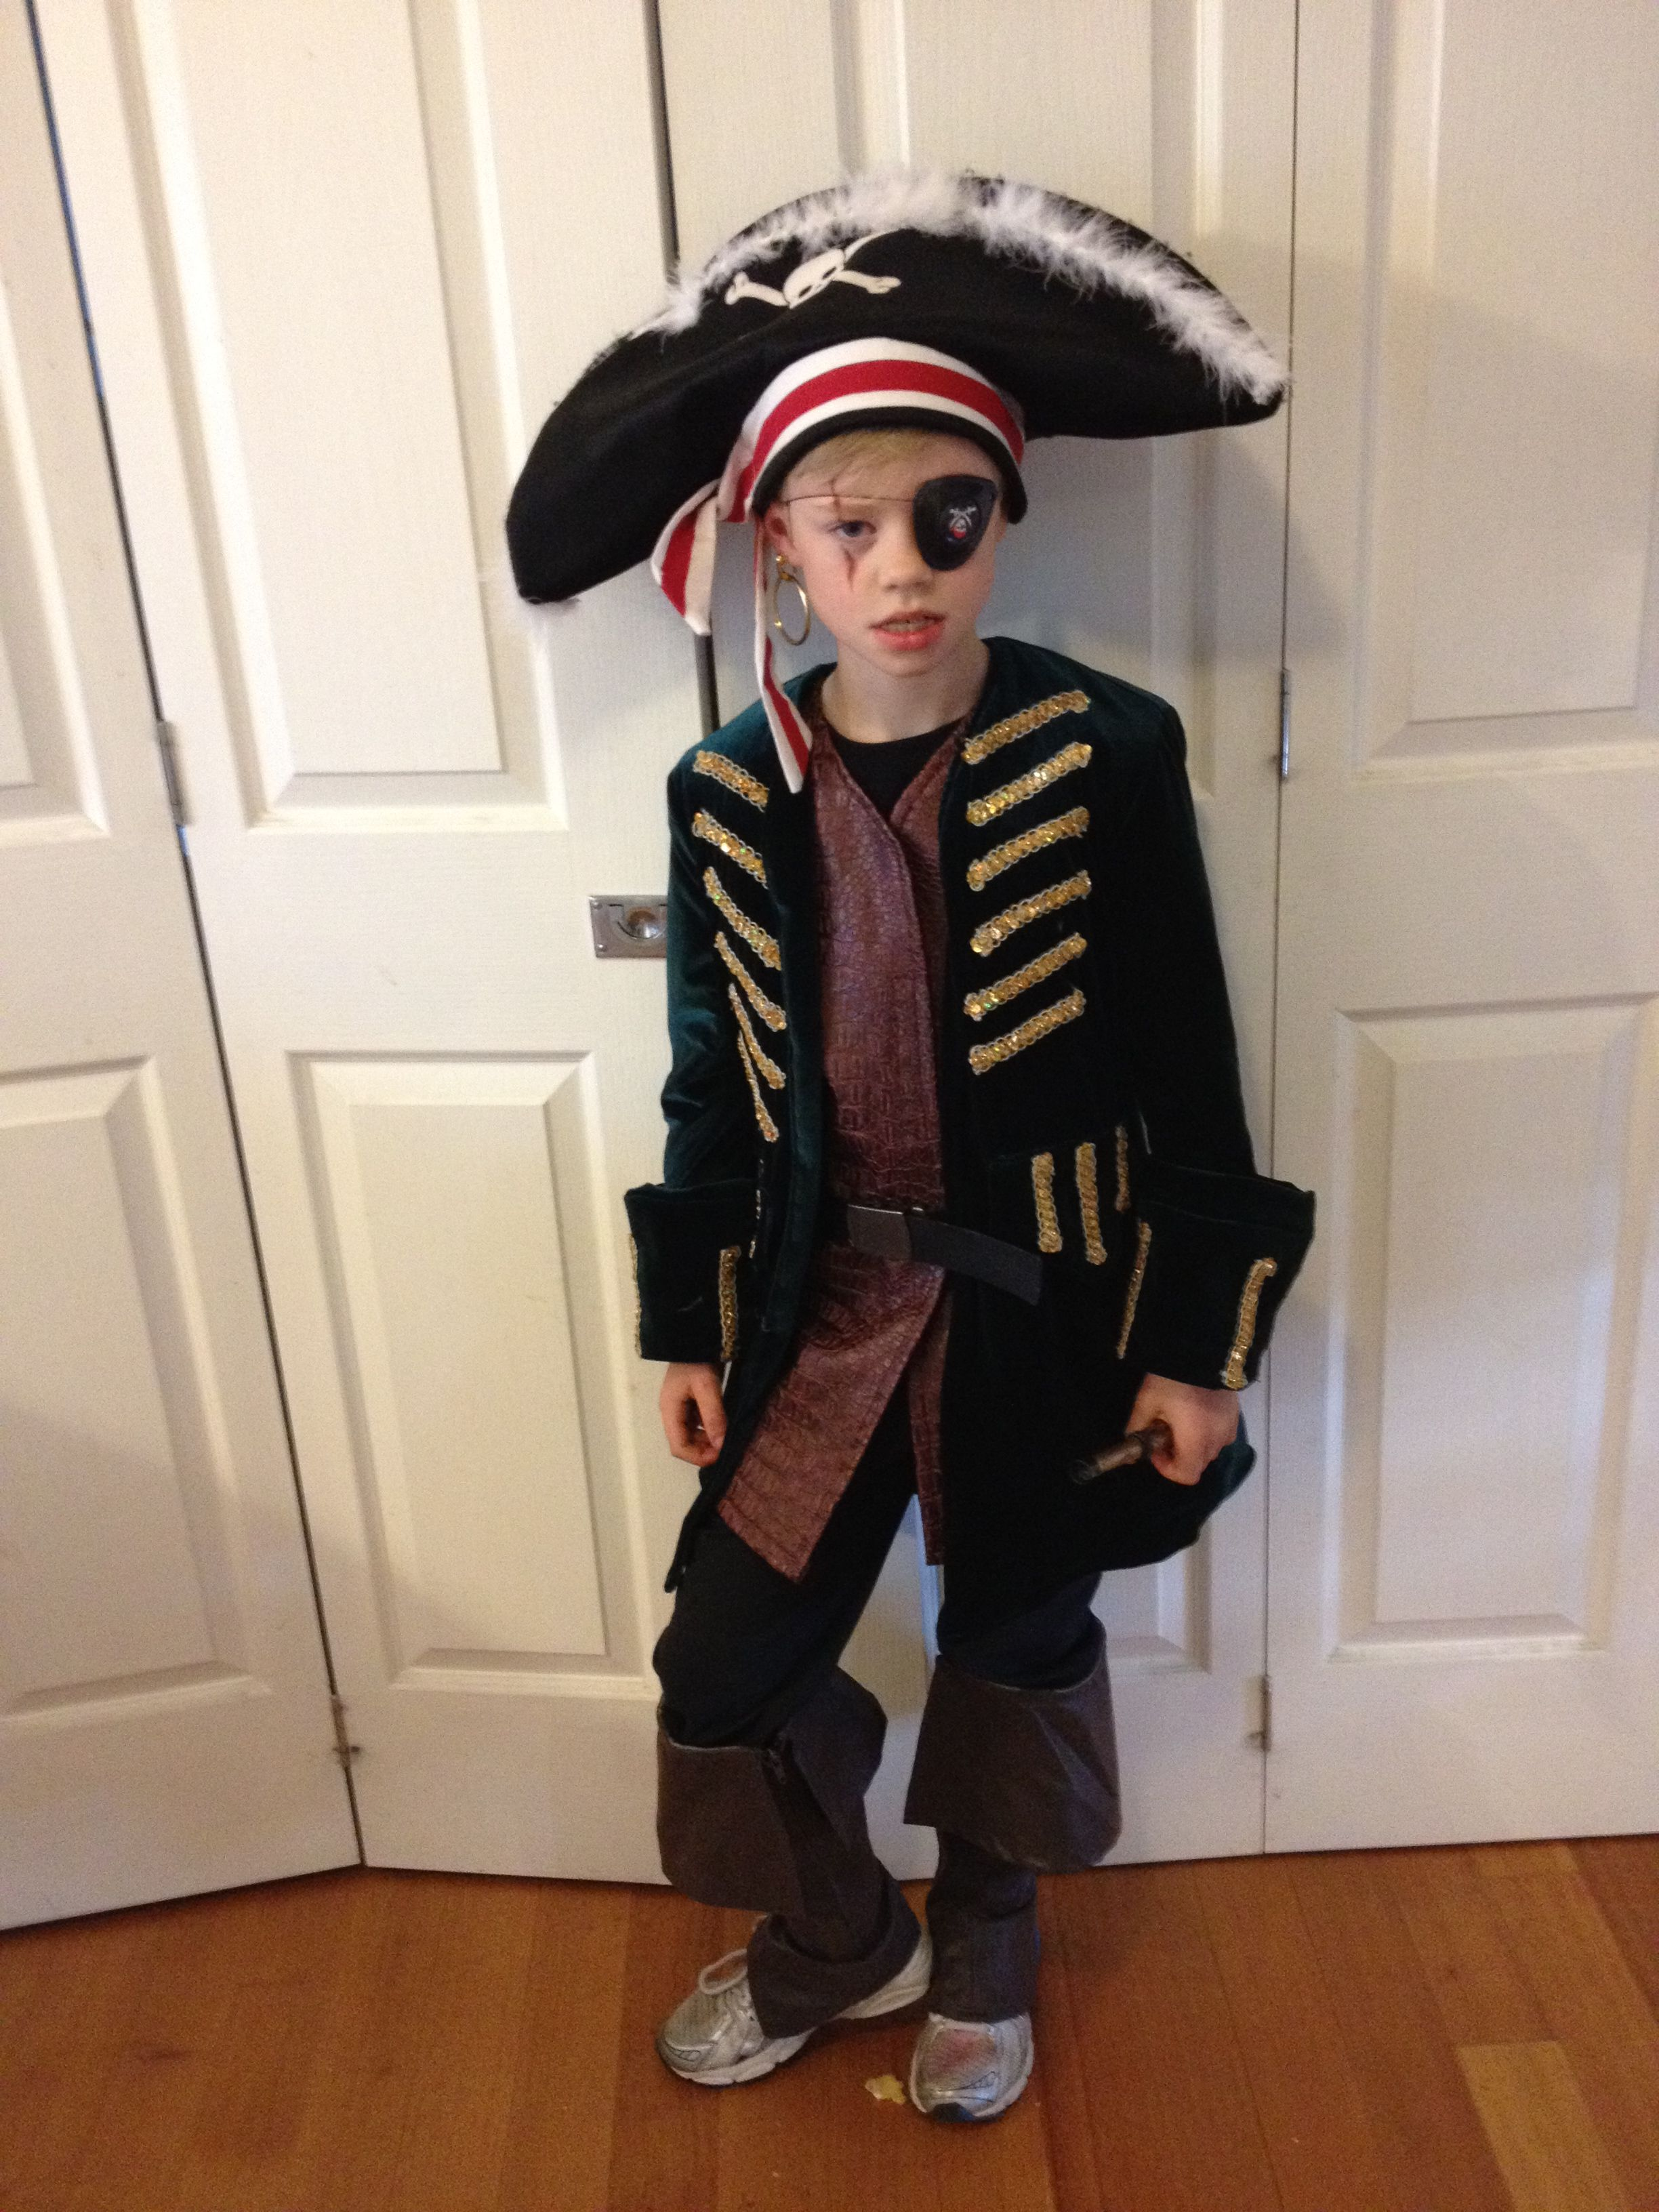 Pirate costume - pirate look without the fringe cuts...